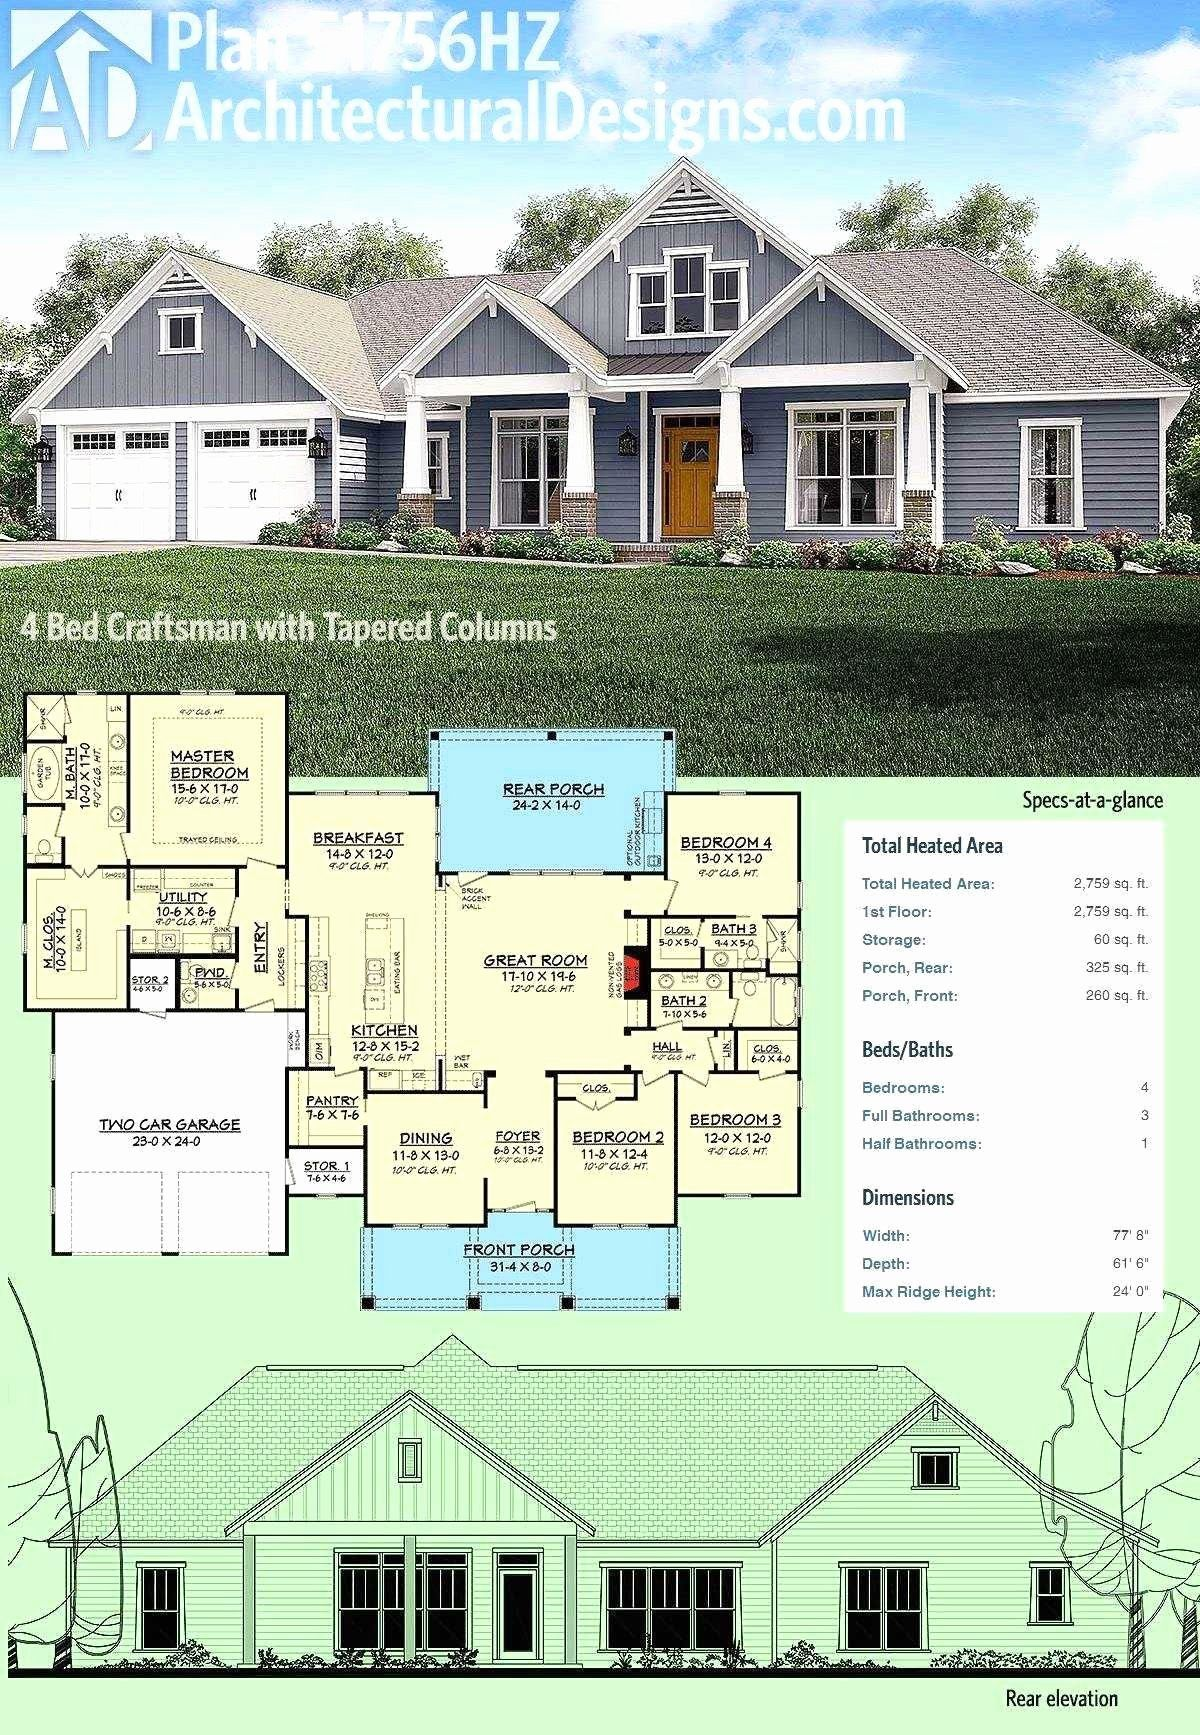 4 Bedroom Craftsman House Plans Awesome Screet Single Story Small Farmhouse Plans In 2020 Craftsman House Plans Craftsman Style House Plans Craftsman House